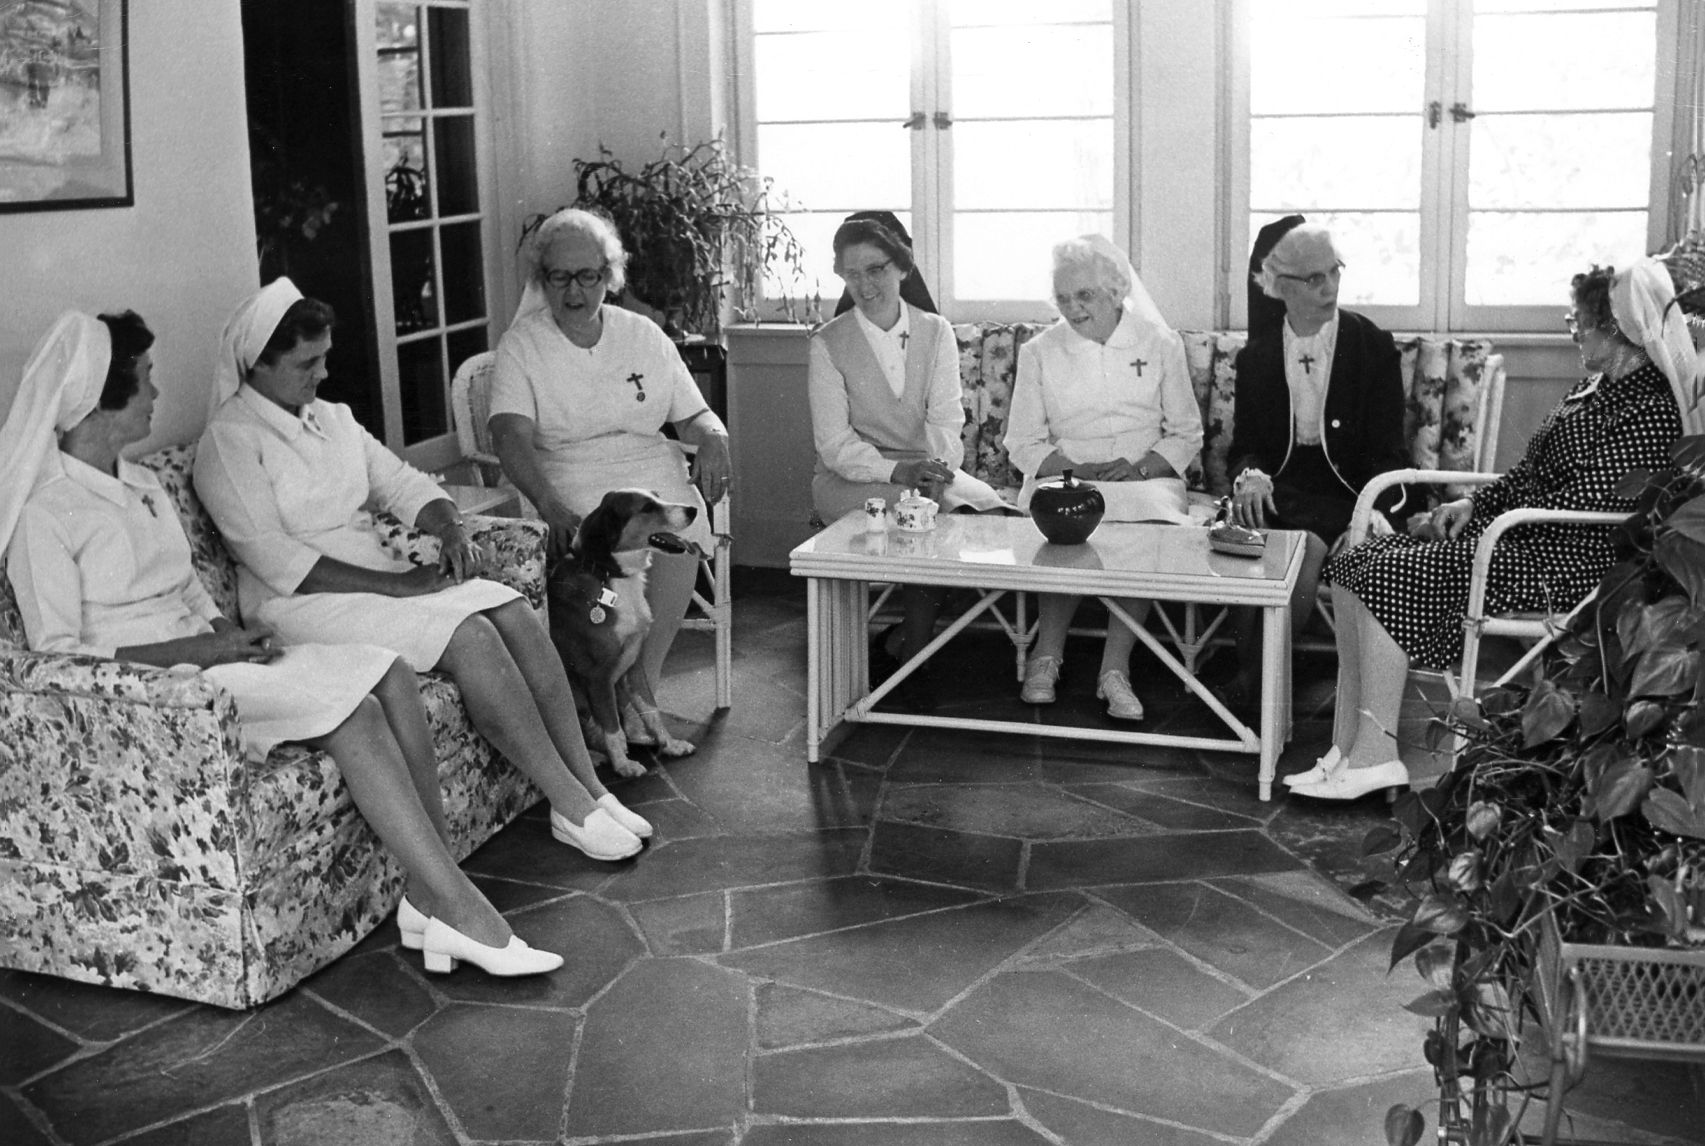 ... Catherine Kennedy; Consuela Haggerty; Ann Marie Rene; And Mary Benignus  Ou0027Sullivan In The St. Joseph Of The Pines Convent Late 1970s To 1980s